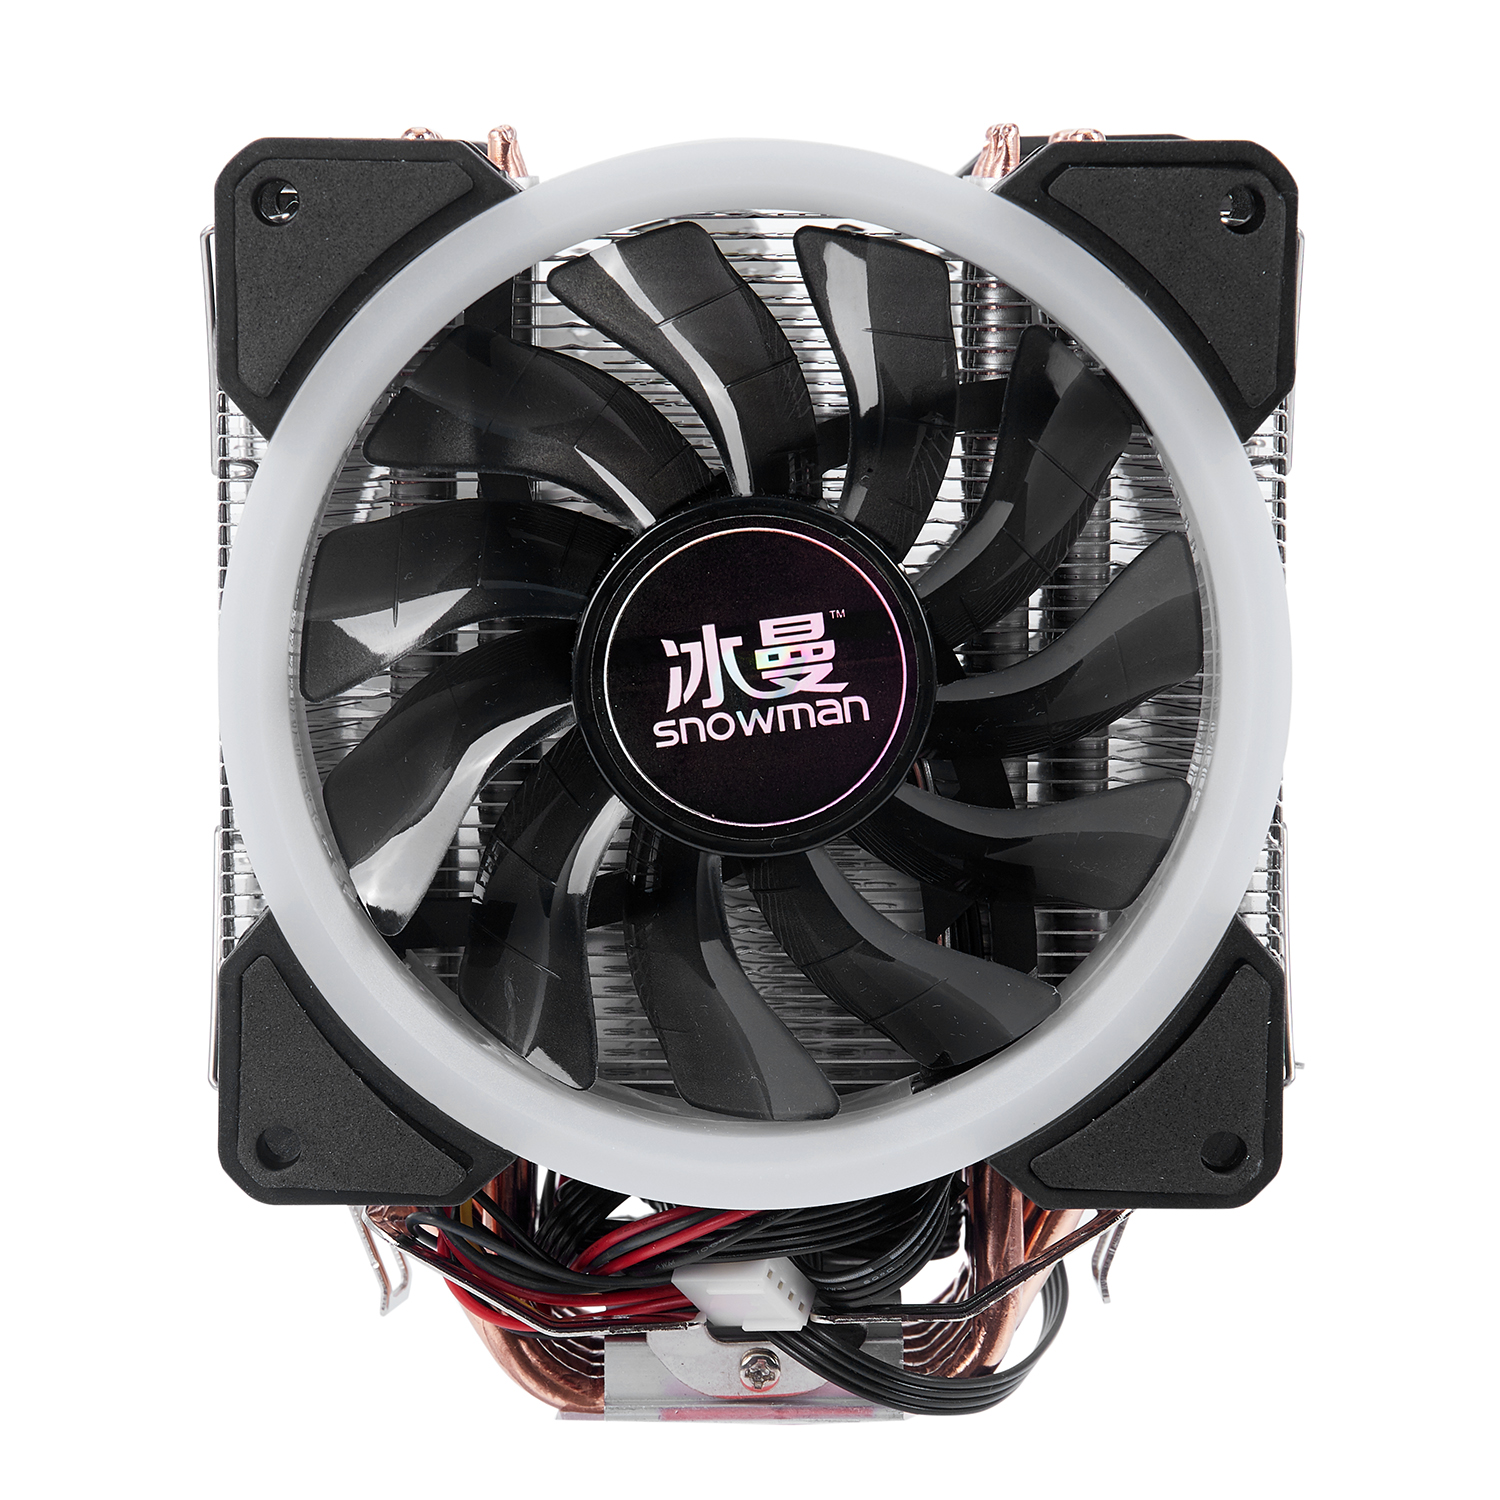 SNOWMAN 4PIN <font><b>CPU</b></font> <font><b>cooler</b></font> 6 heatpipe RGB LED Double fans cooling 12cm fan LGA775 1151 <font><b>115x</b></font> 1366 support Intel AMD image